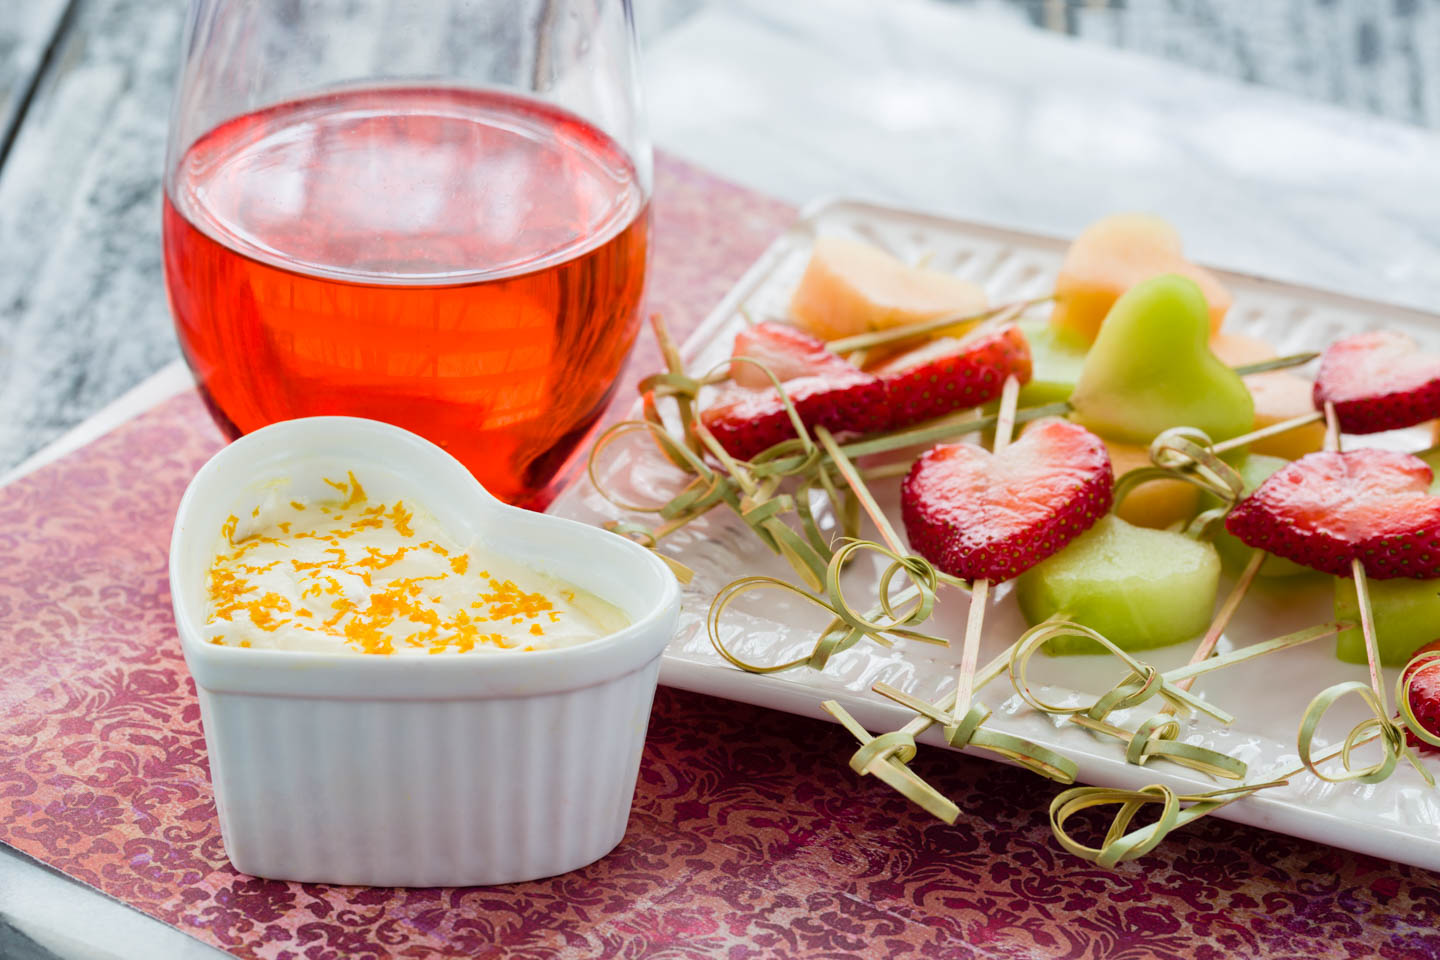 Heart Fruit Dip